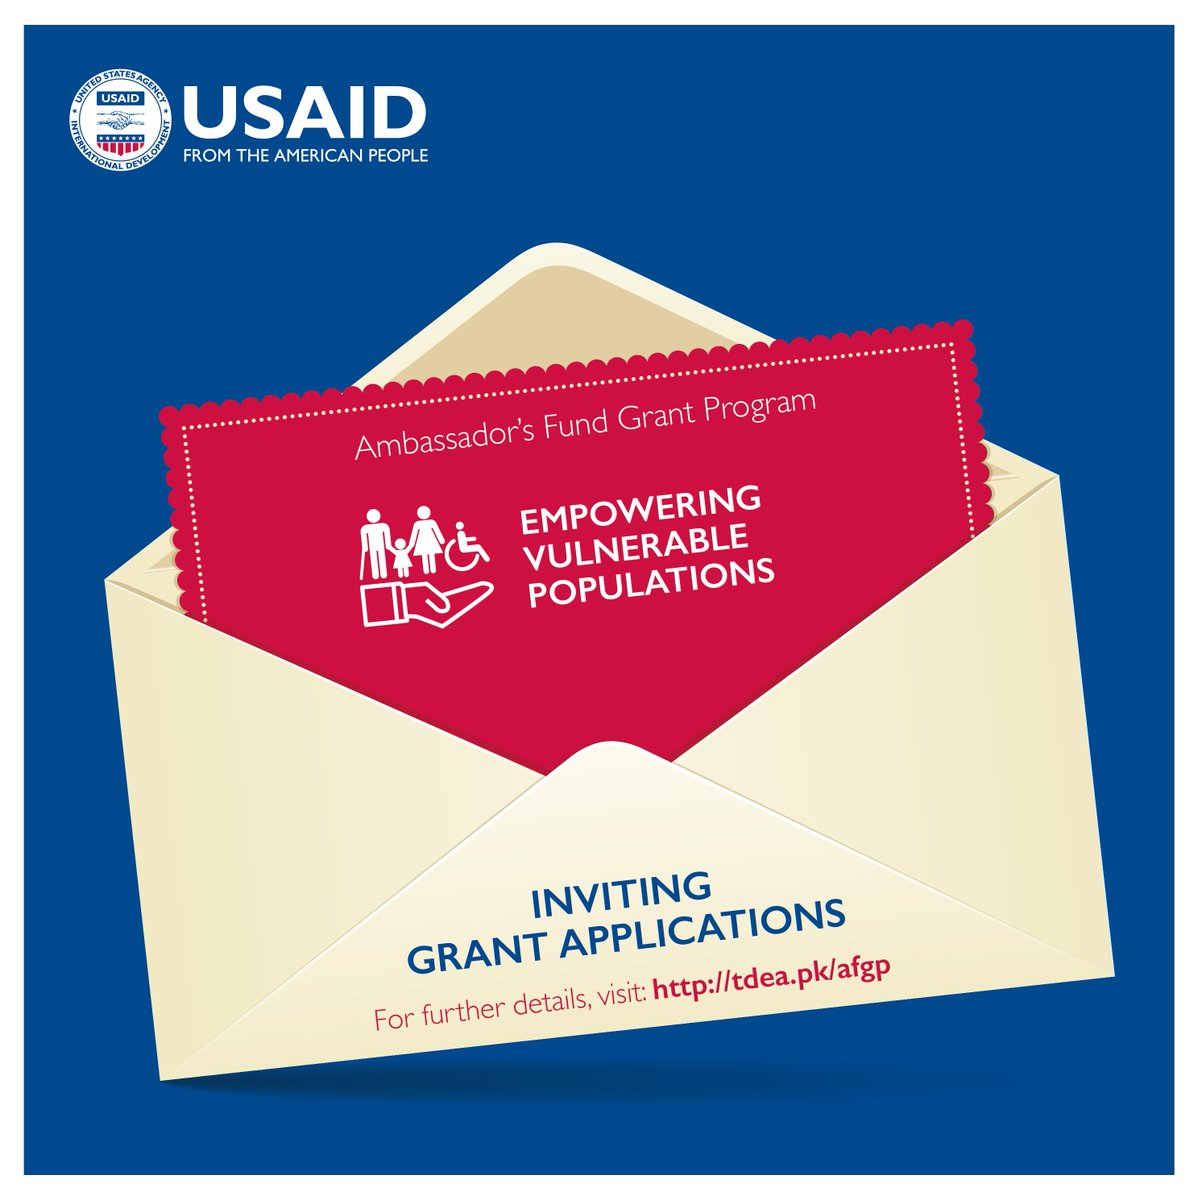 USAID's Ambassador's Fund Grant Program is now accepting applications: tdea.pk/afgp Priority Areas: Empowering Vulnerable Populations Encouraging Social Entrepreneurship Developing Small-Scale Energy Solutions Promoting Culture & Arts Improving Disaster Preparedness